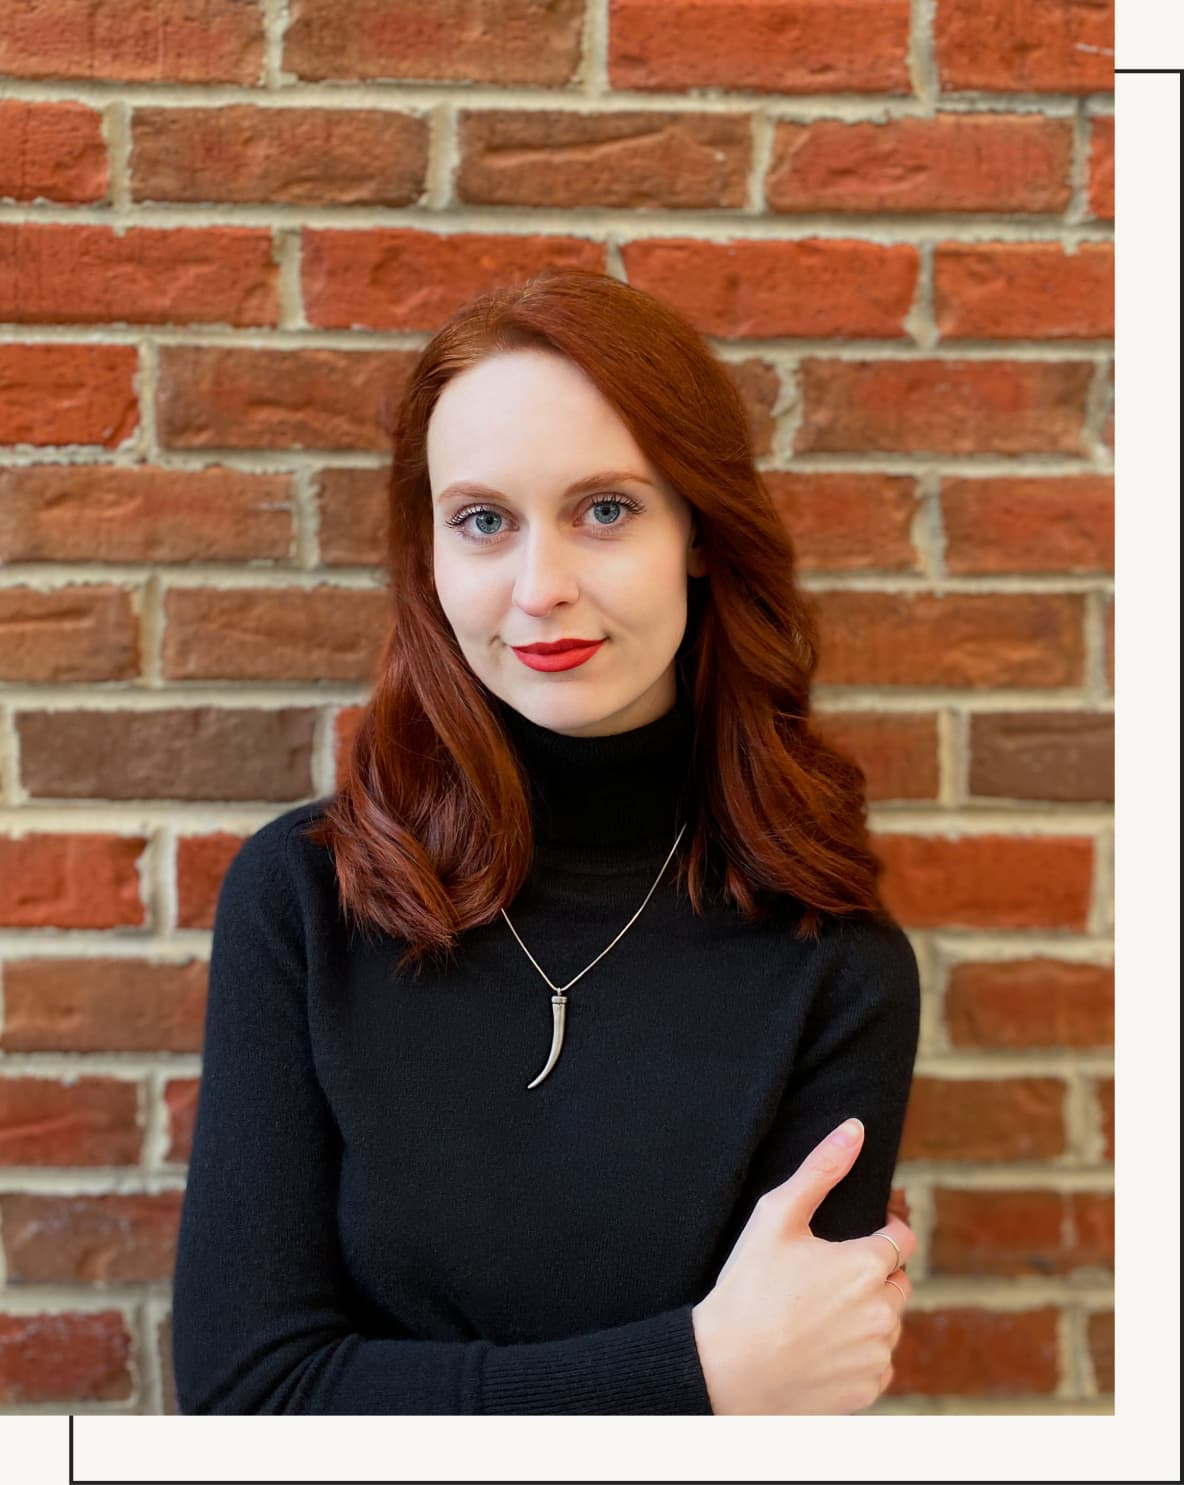 A photo of Katie Lively standing in front of a red brick wall.